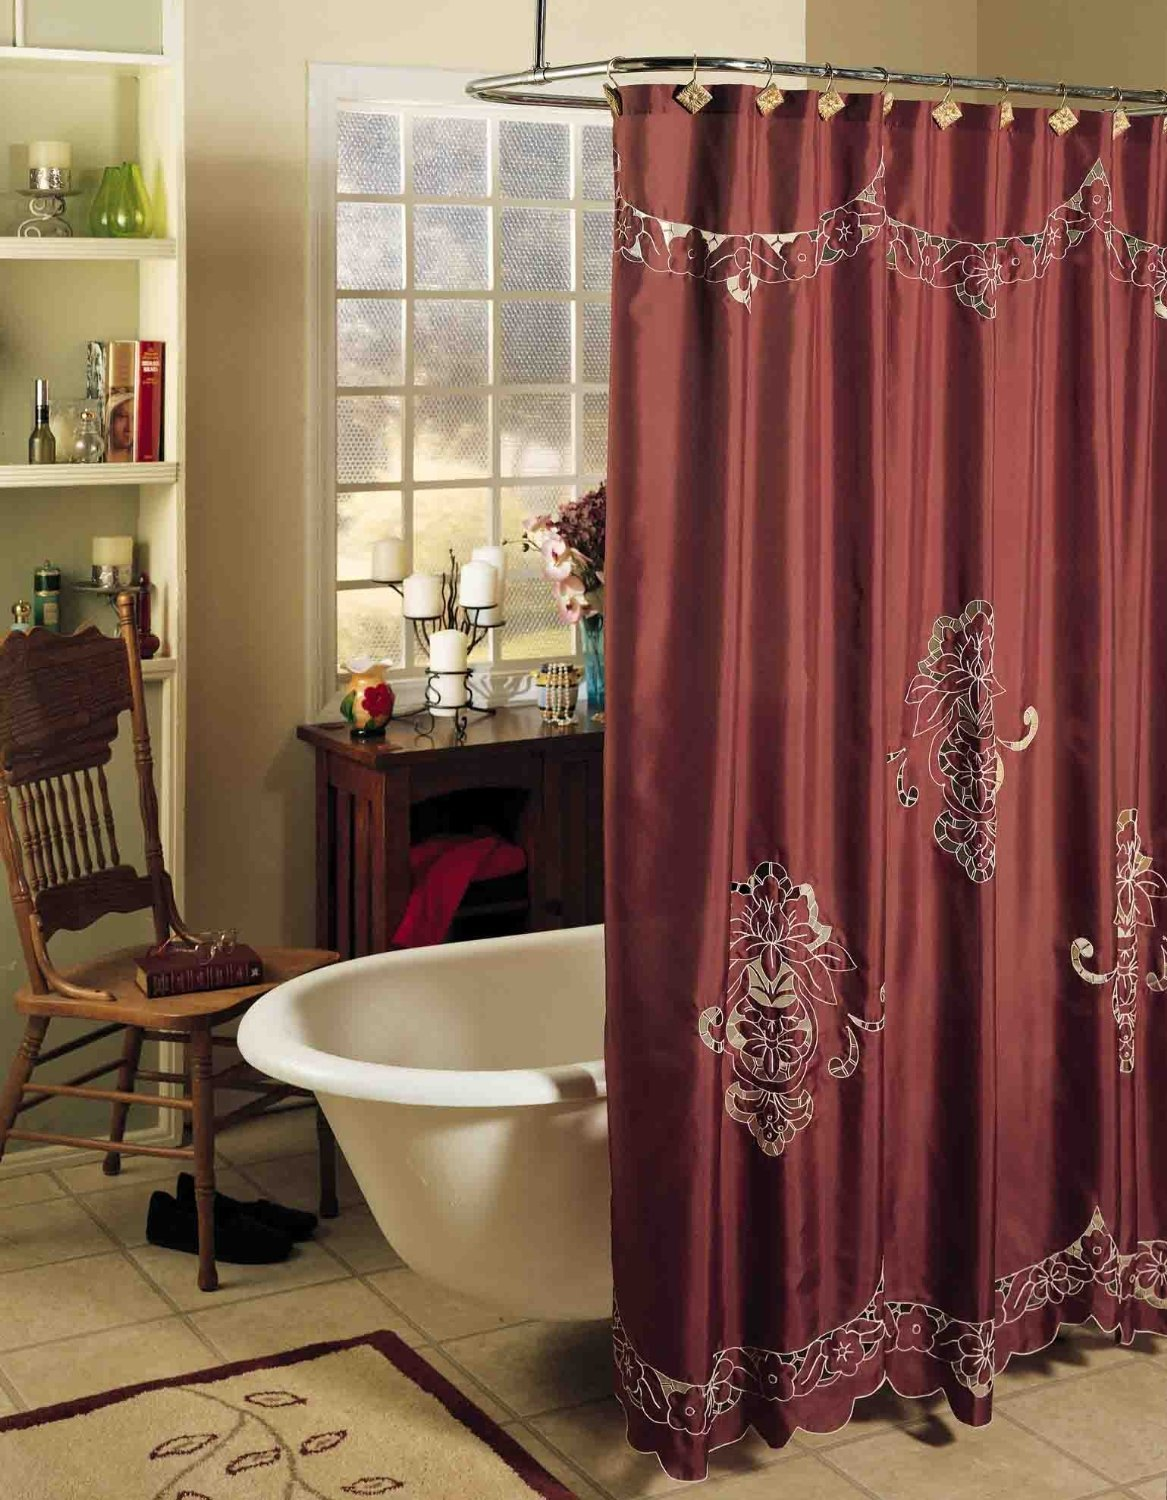 Amazon Com Creative Linens Valencia Cutwork Embroidery Fabric Shower Curtain Burgundy Holiday Home Kitchen